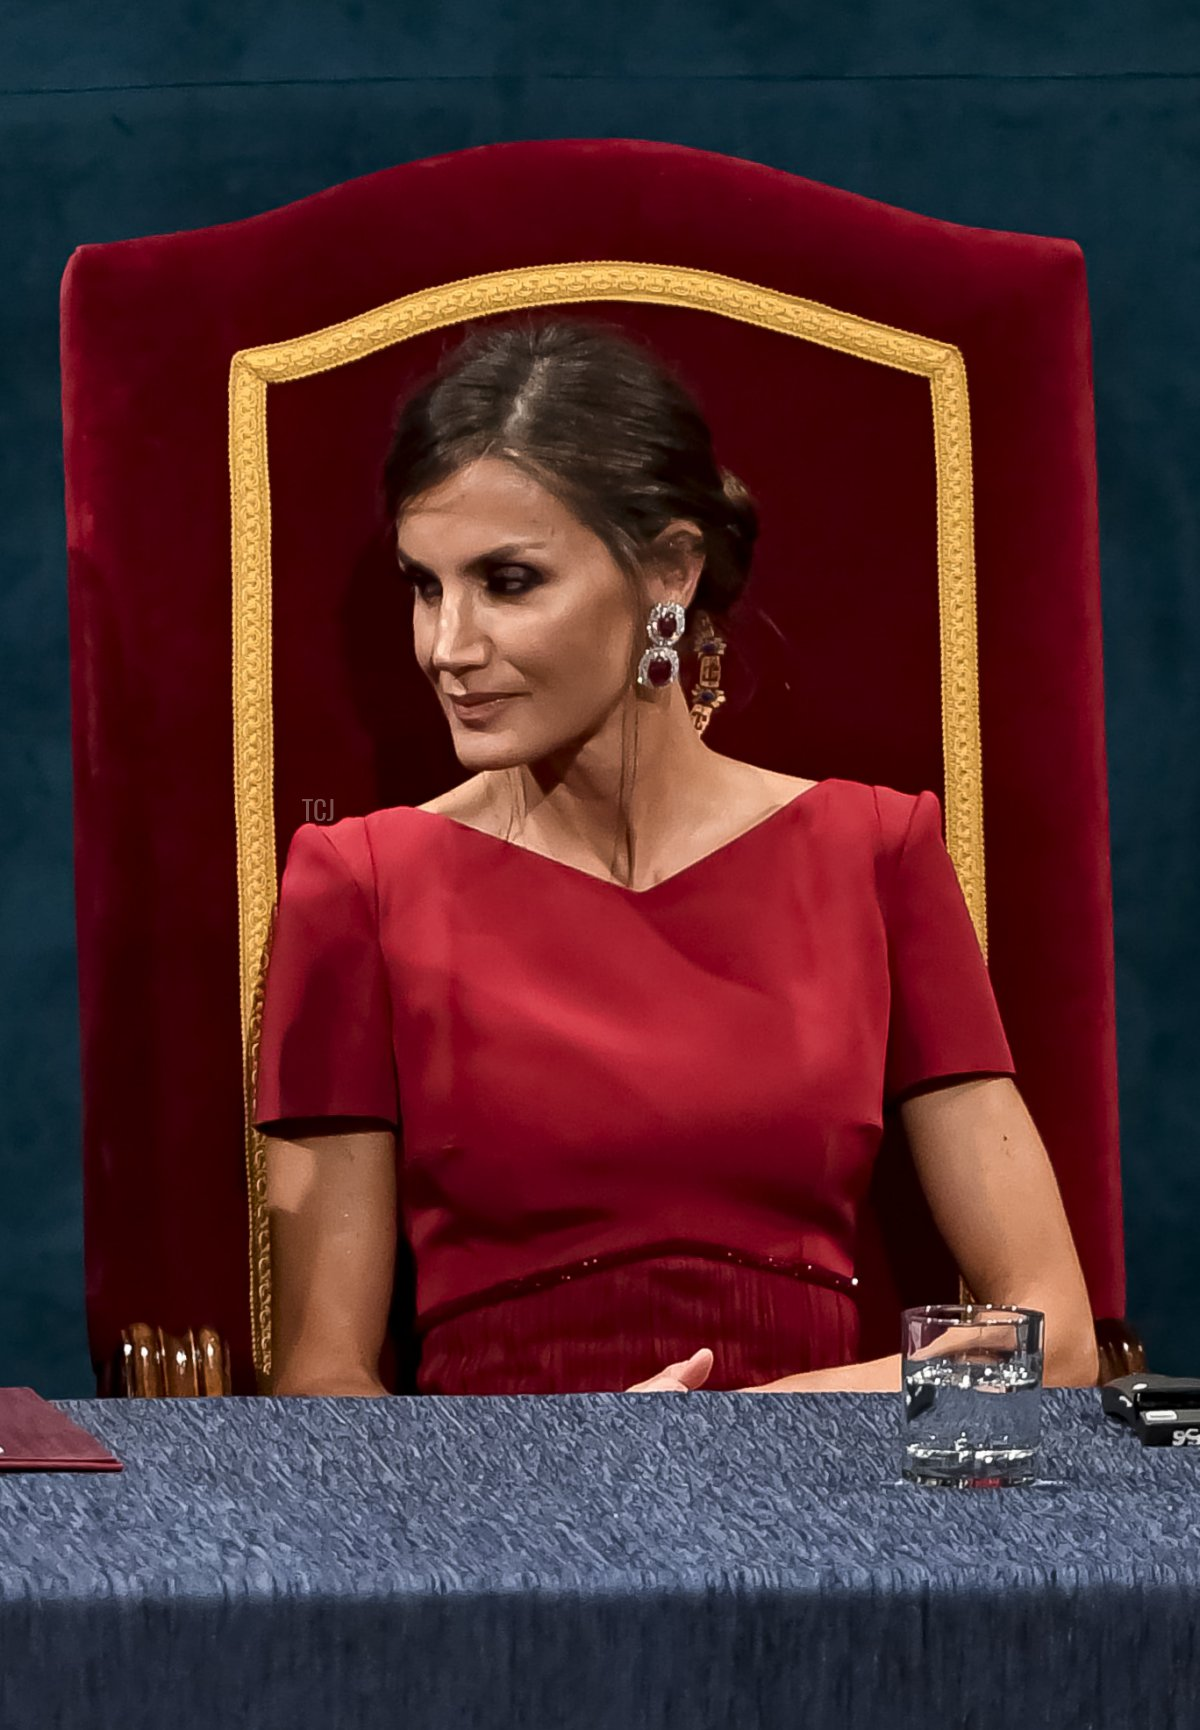 King Felipe of Spain and Queen Letizia of Spain attend the Princesa de Asturias Awards 2019 ceremony at the Campoamor Theater on October 18, 2019 in Oviedo, Spain